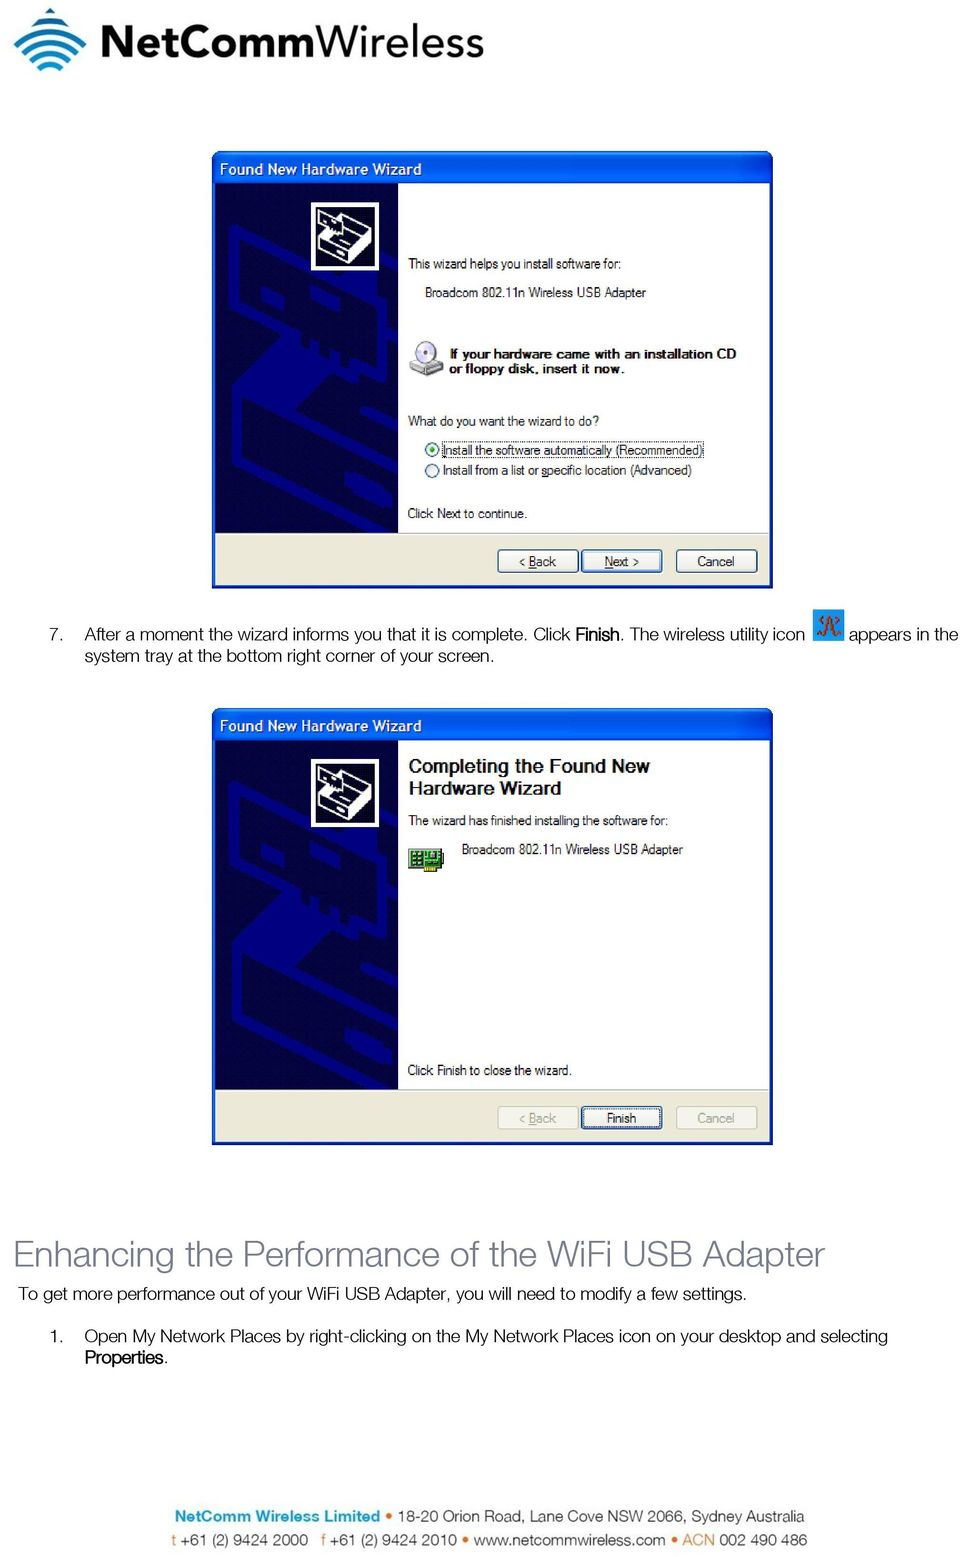 Enhancing the Performance of the WiFi USB Adapter To get more performance out of your WiFi USB Adapter, you